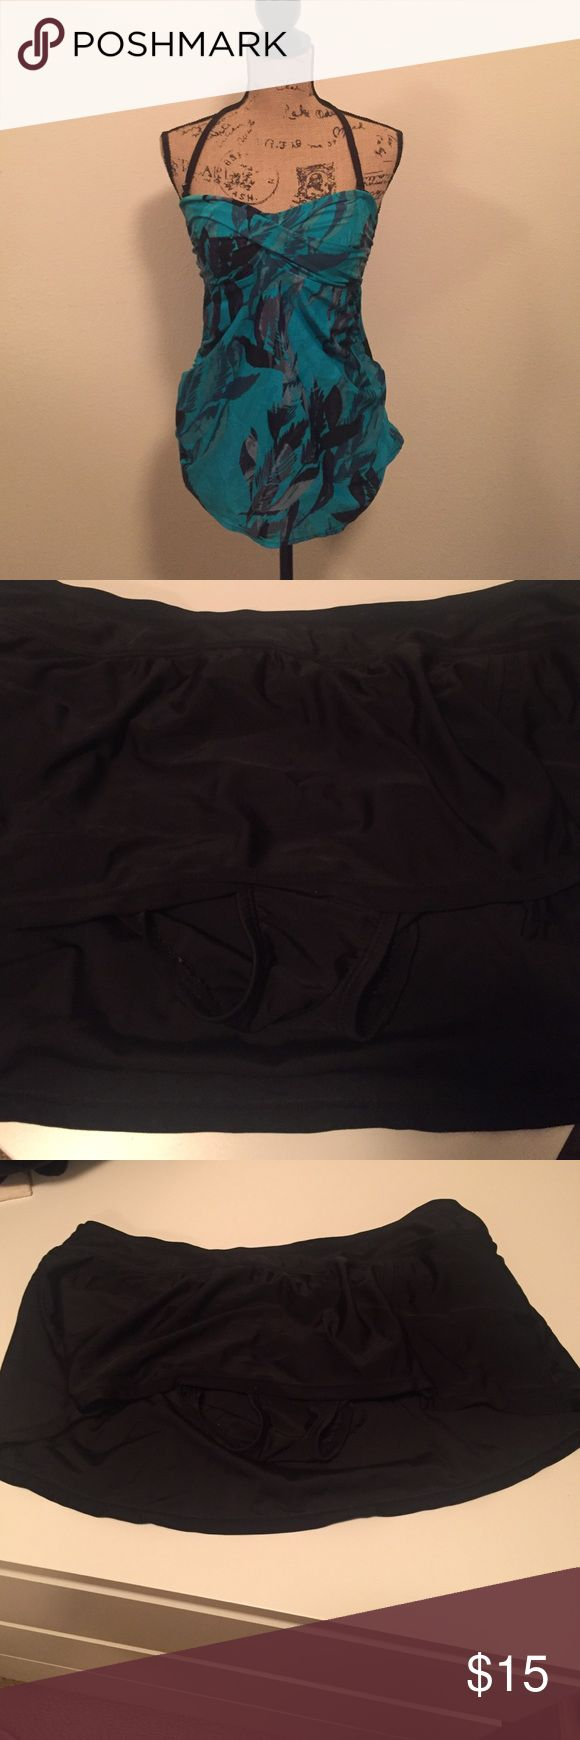 Maternity two piece suit Used good condition size small in maternity Liz Lange for Target Swim